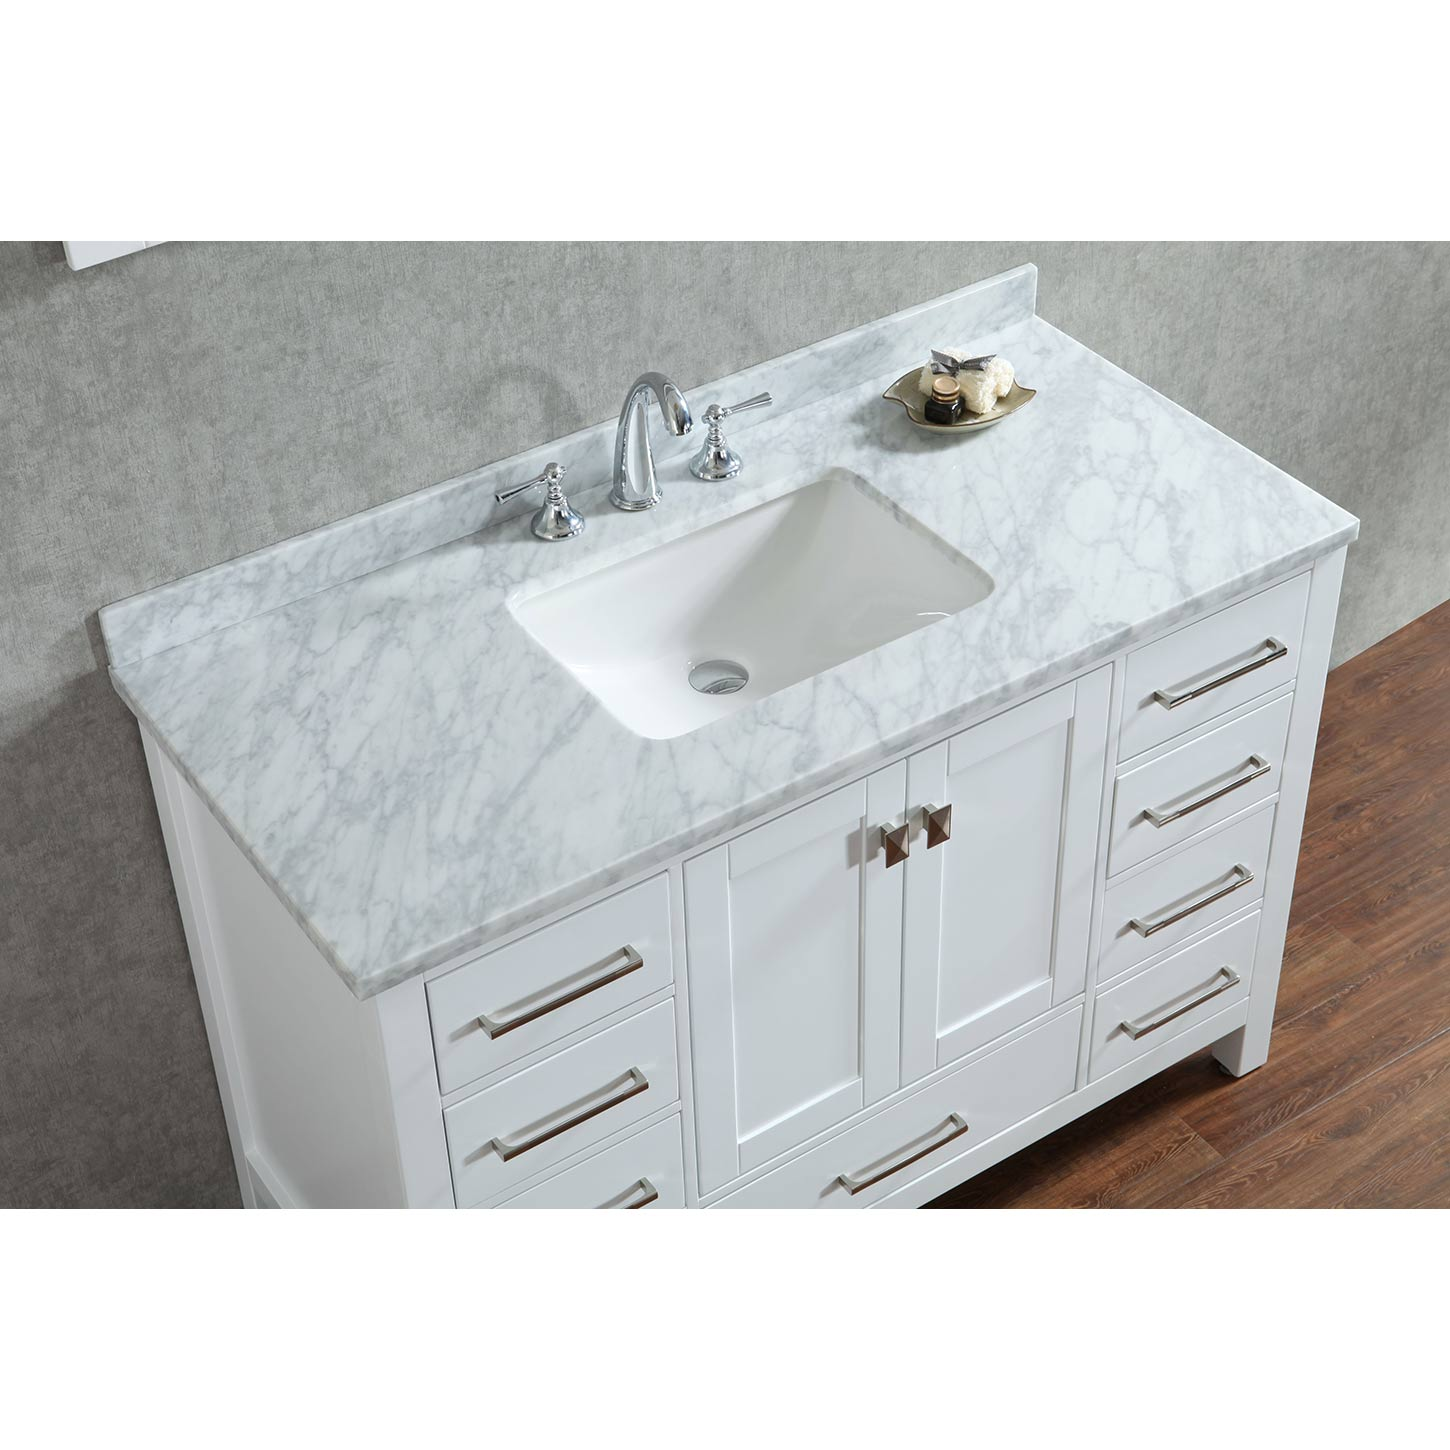 Bathroom Cabinets 48 Inch buy vincent 48 inch solid wood single bathroom vanity in white hm